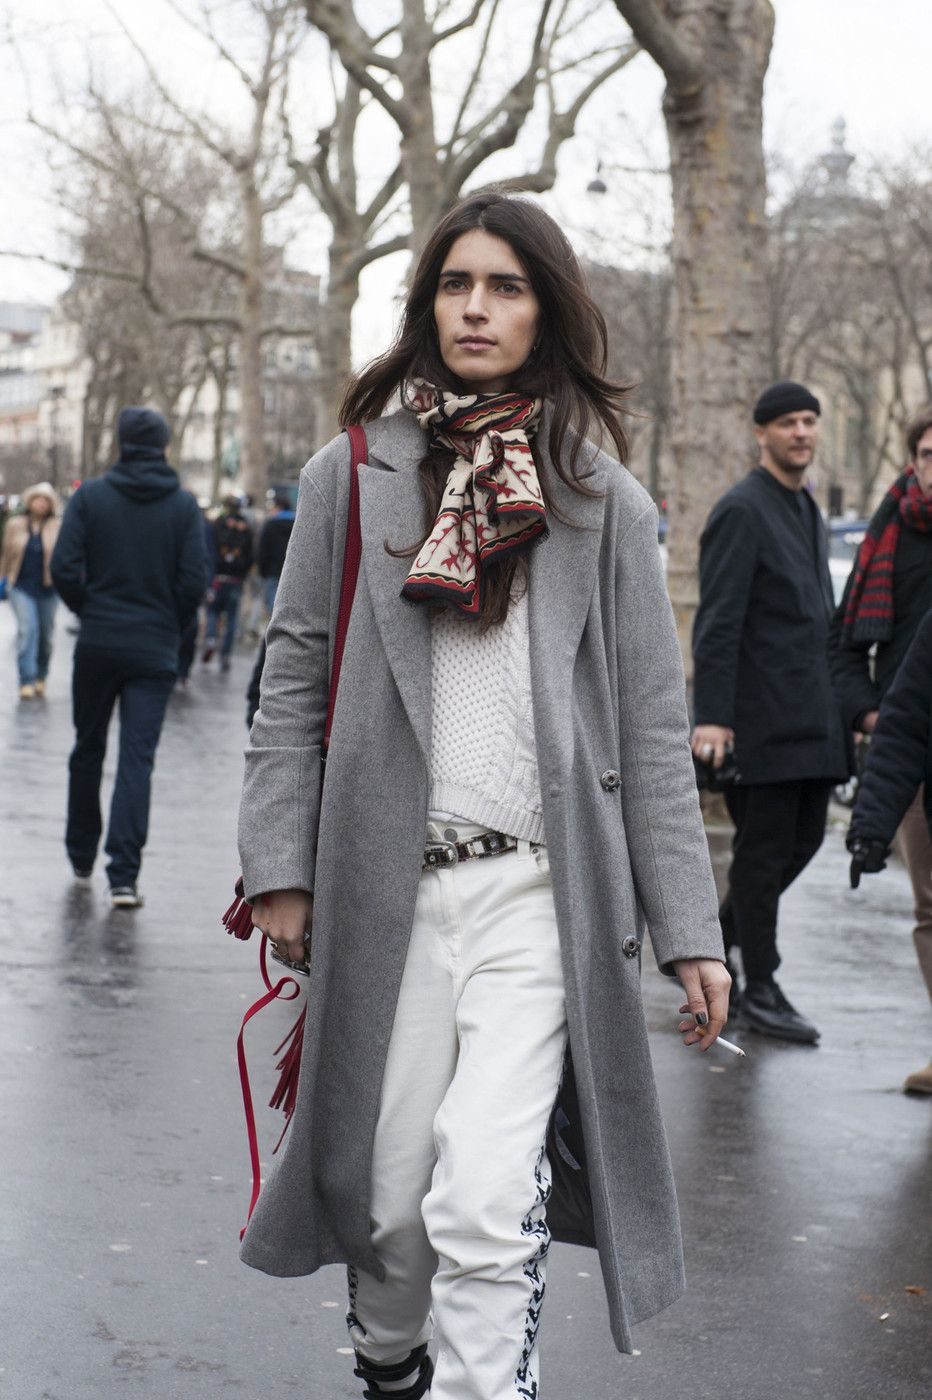 Paris Fashion Week Fall 2014 Attendees Pictures WinterWinter Street StylesFrench